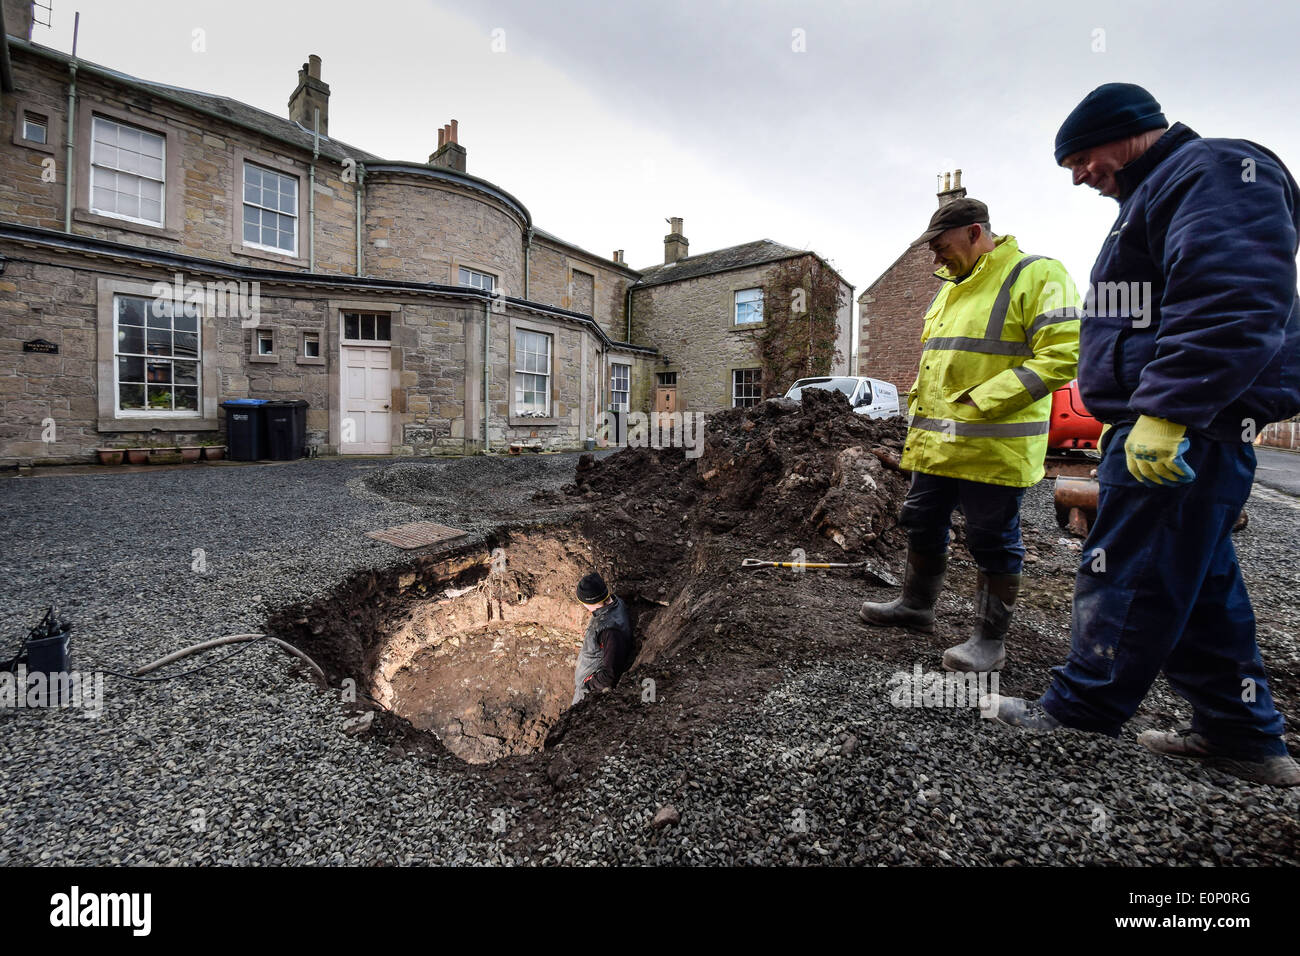 Builders inspect a hidden underground structure revealed by a void collapsing in a yard - Georgian brick icehouse, well or drain - Stock Image